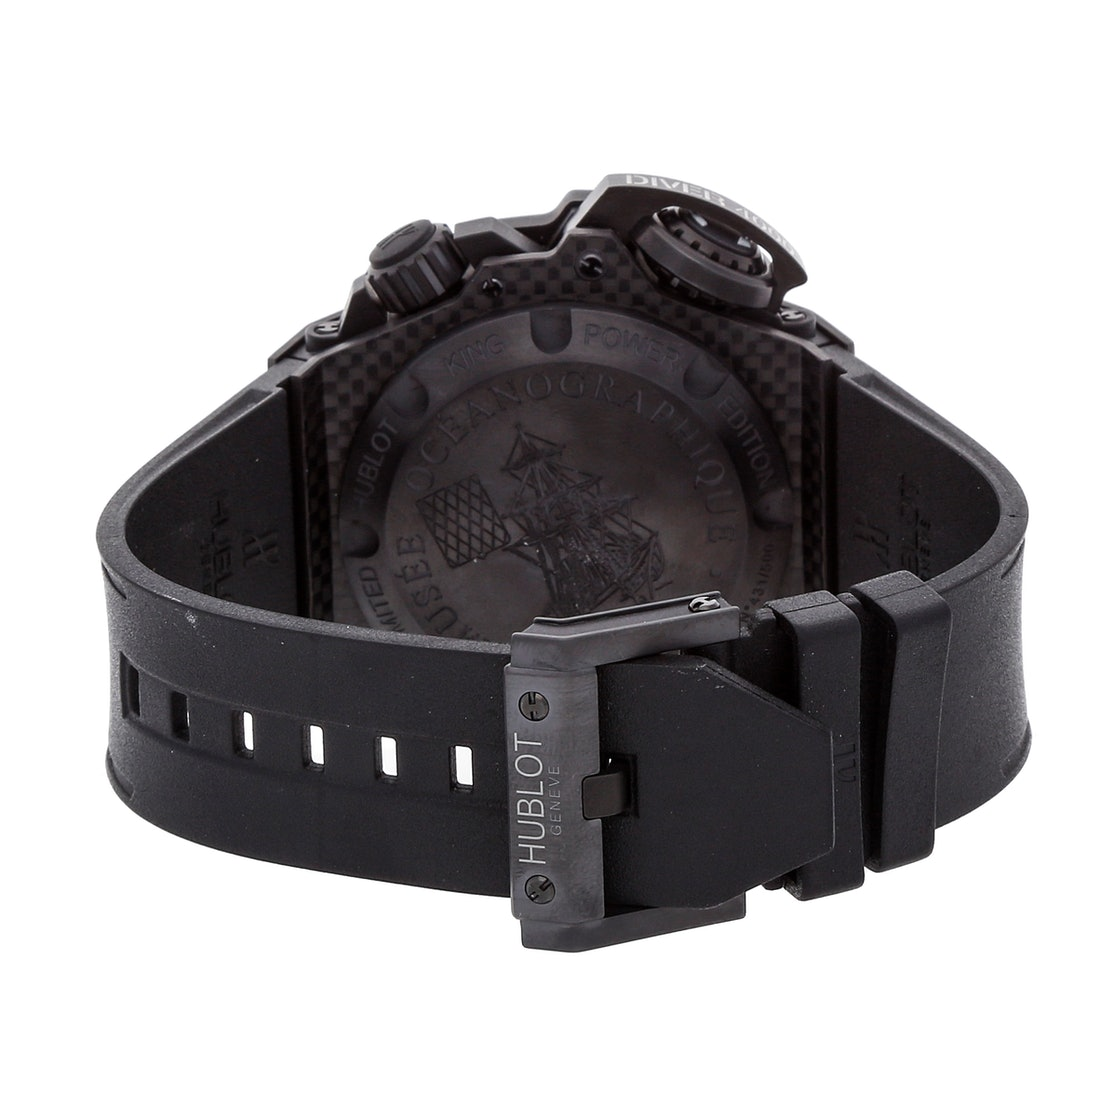 Hublot King Power Oceanographic 4000 Limited Edition 731.QX.1140.RX